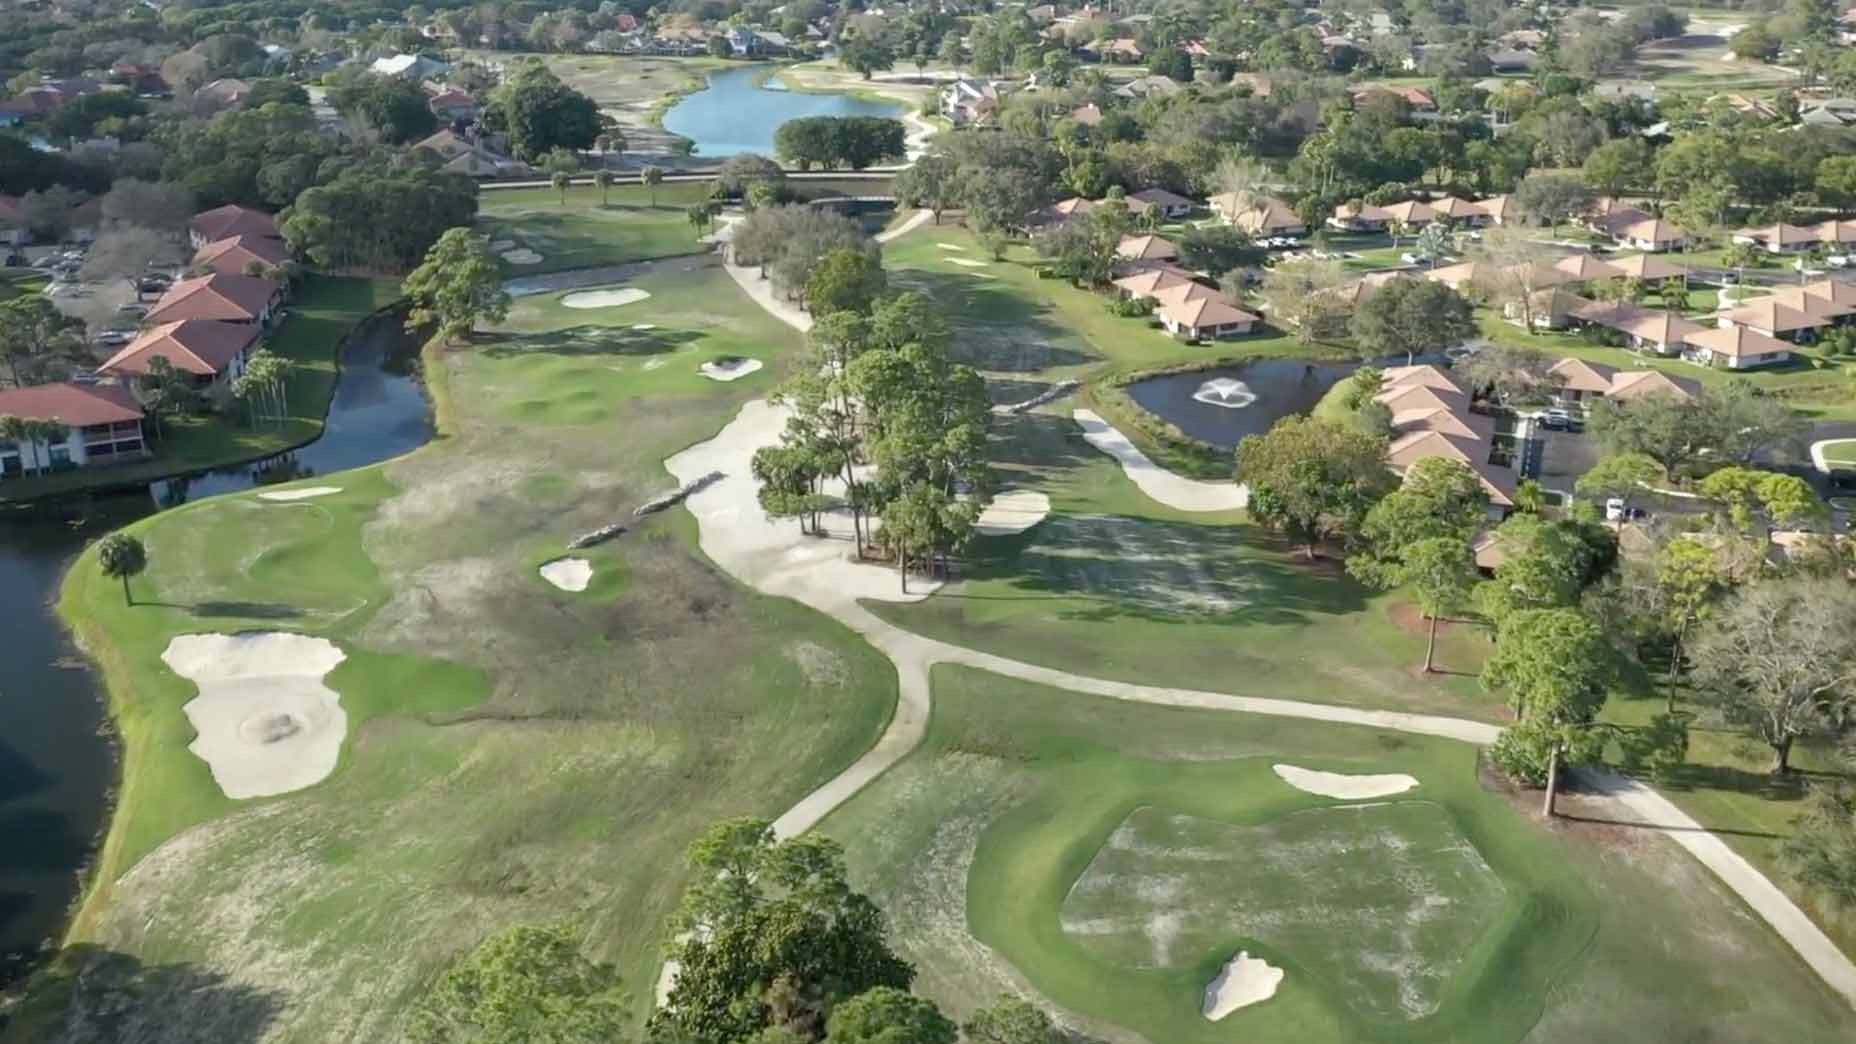 The new par-3 course at PGA National.